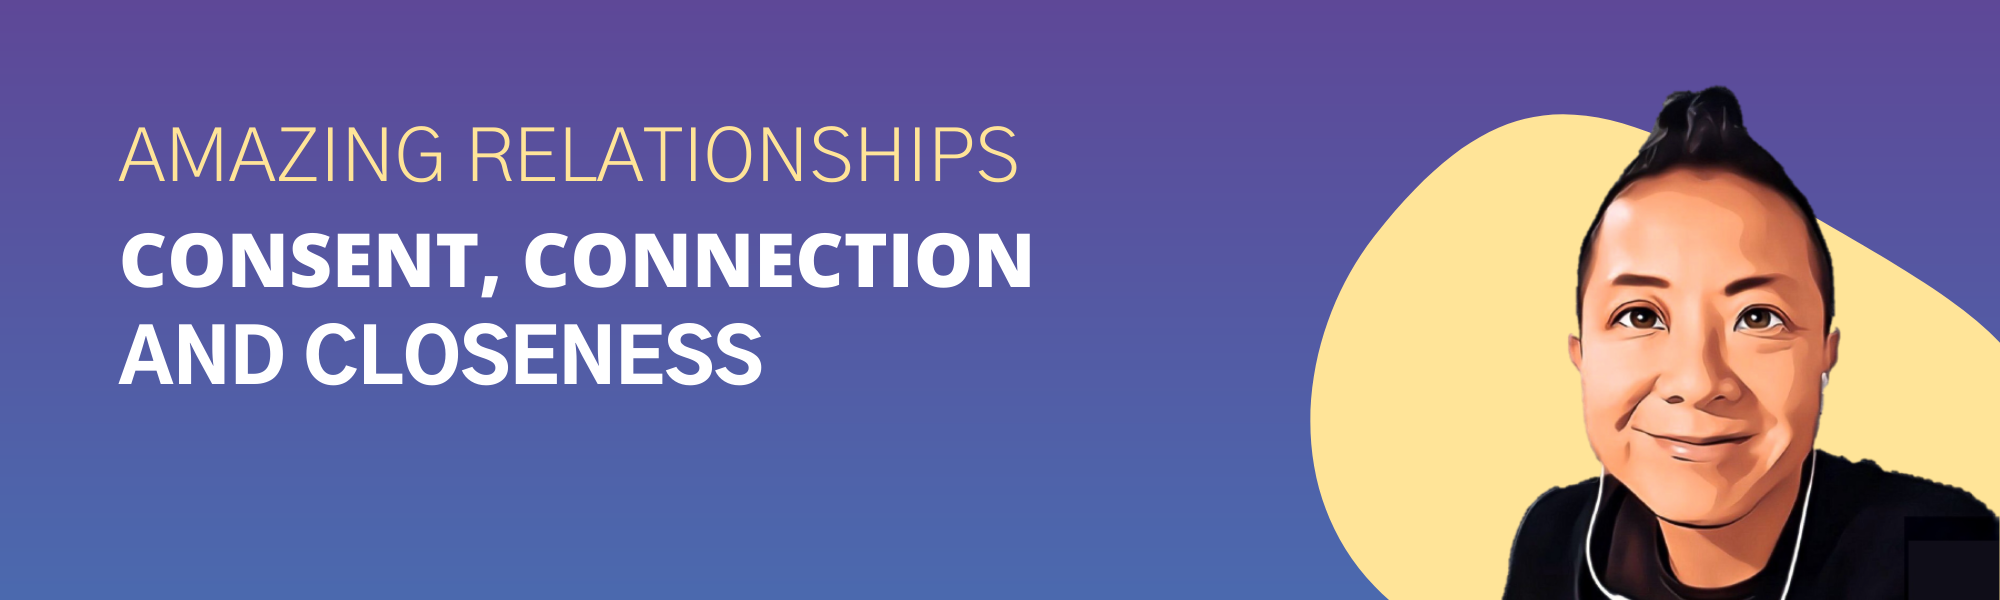 Image reads: Amazing Relationships: Consent Connection and Closeness. Click to learn more.